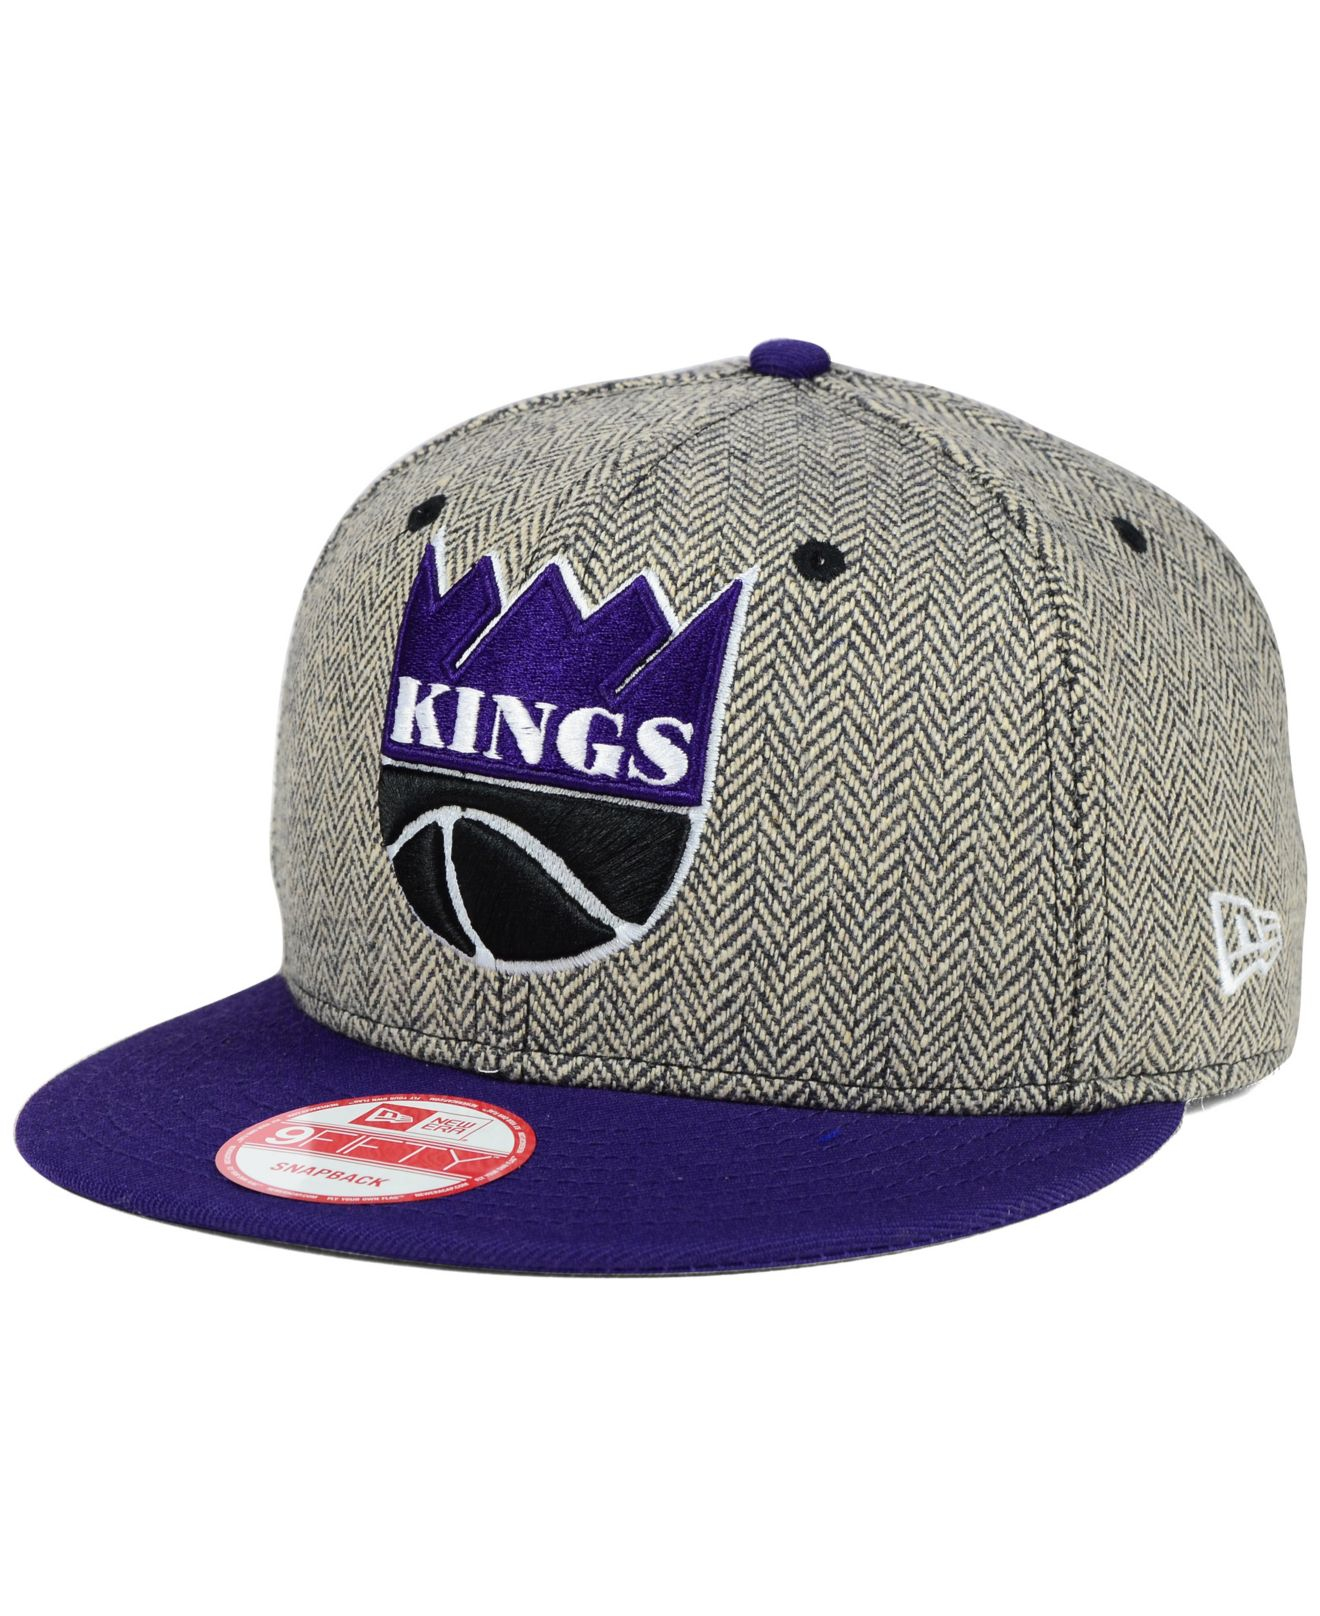 uk availability a8adf 7e447 Lyst - KTZ Sacramento Kings Houndsteam Snapback Cap in Gray for Men